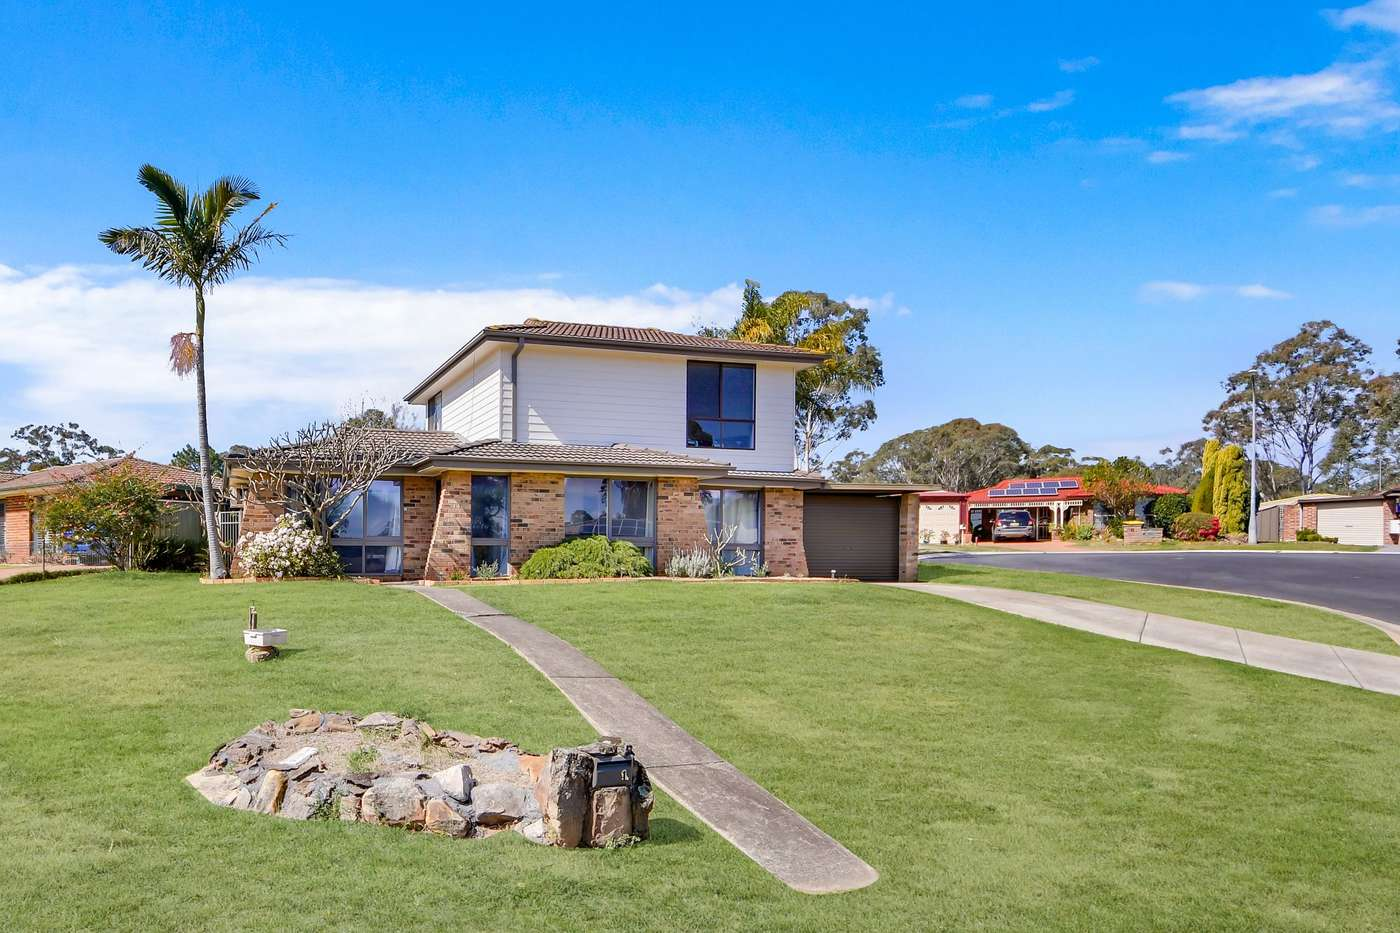 Main view of Homely house listing, 1 Alfa Place, Ingleburn, NSW 2565